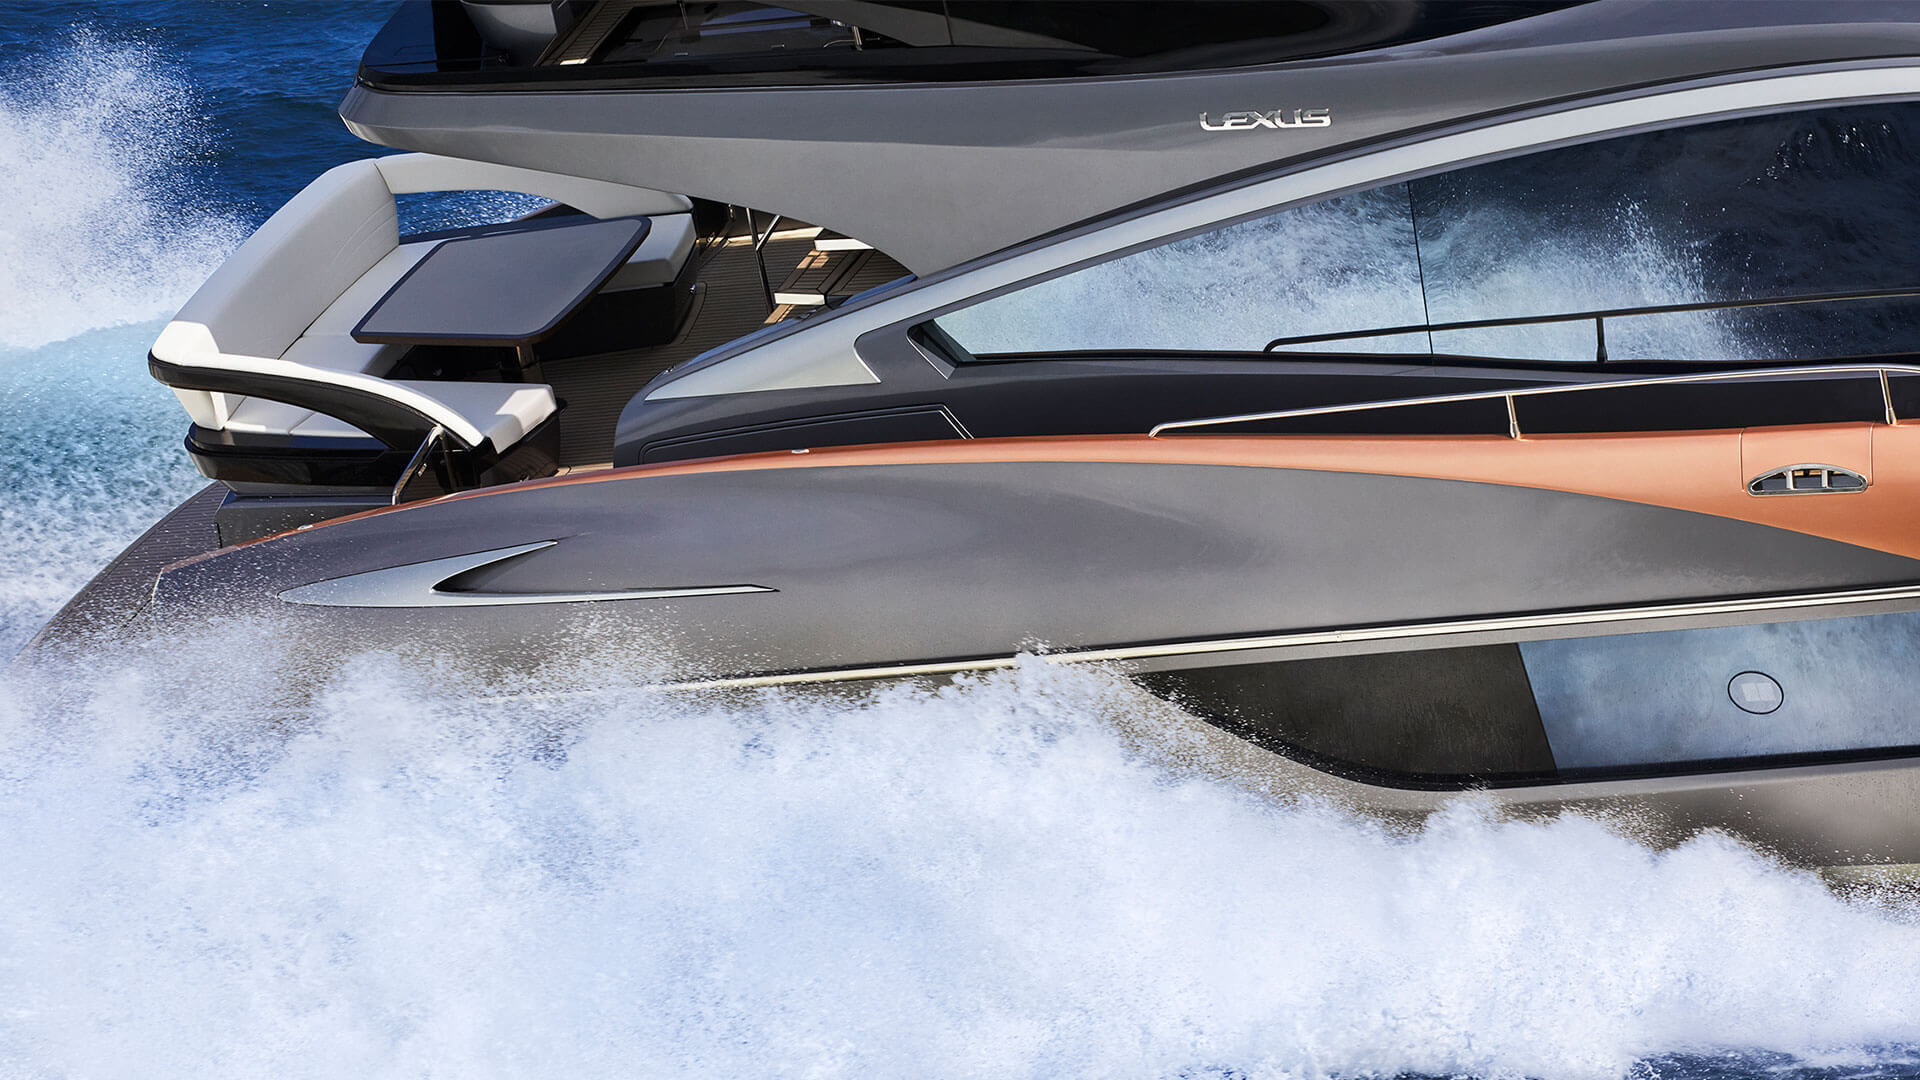 2020 lexus yacht ly 650 premiere gallery 08